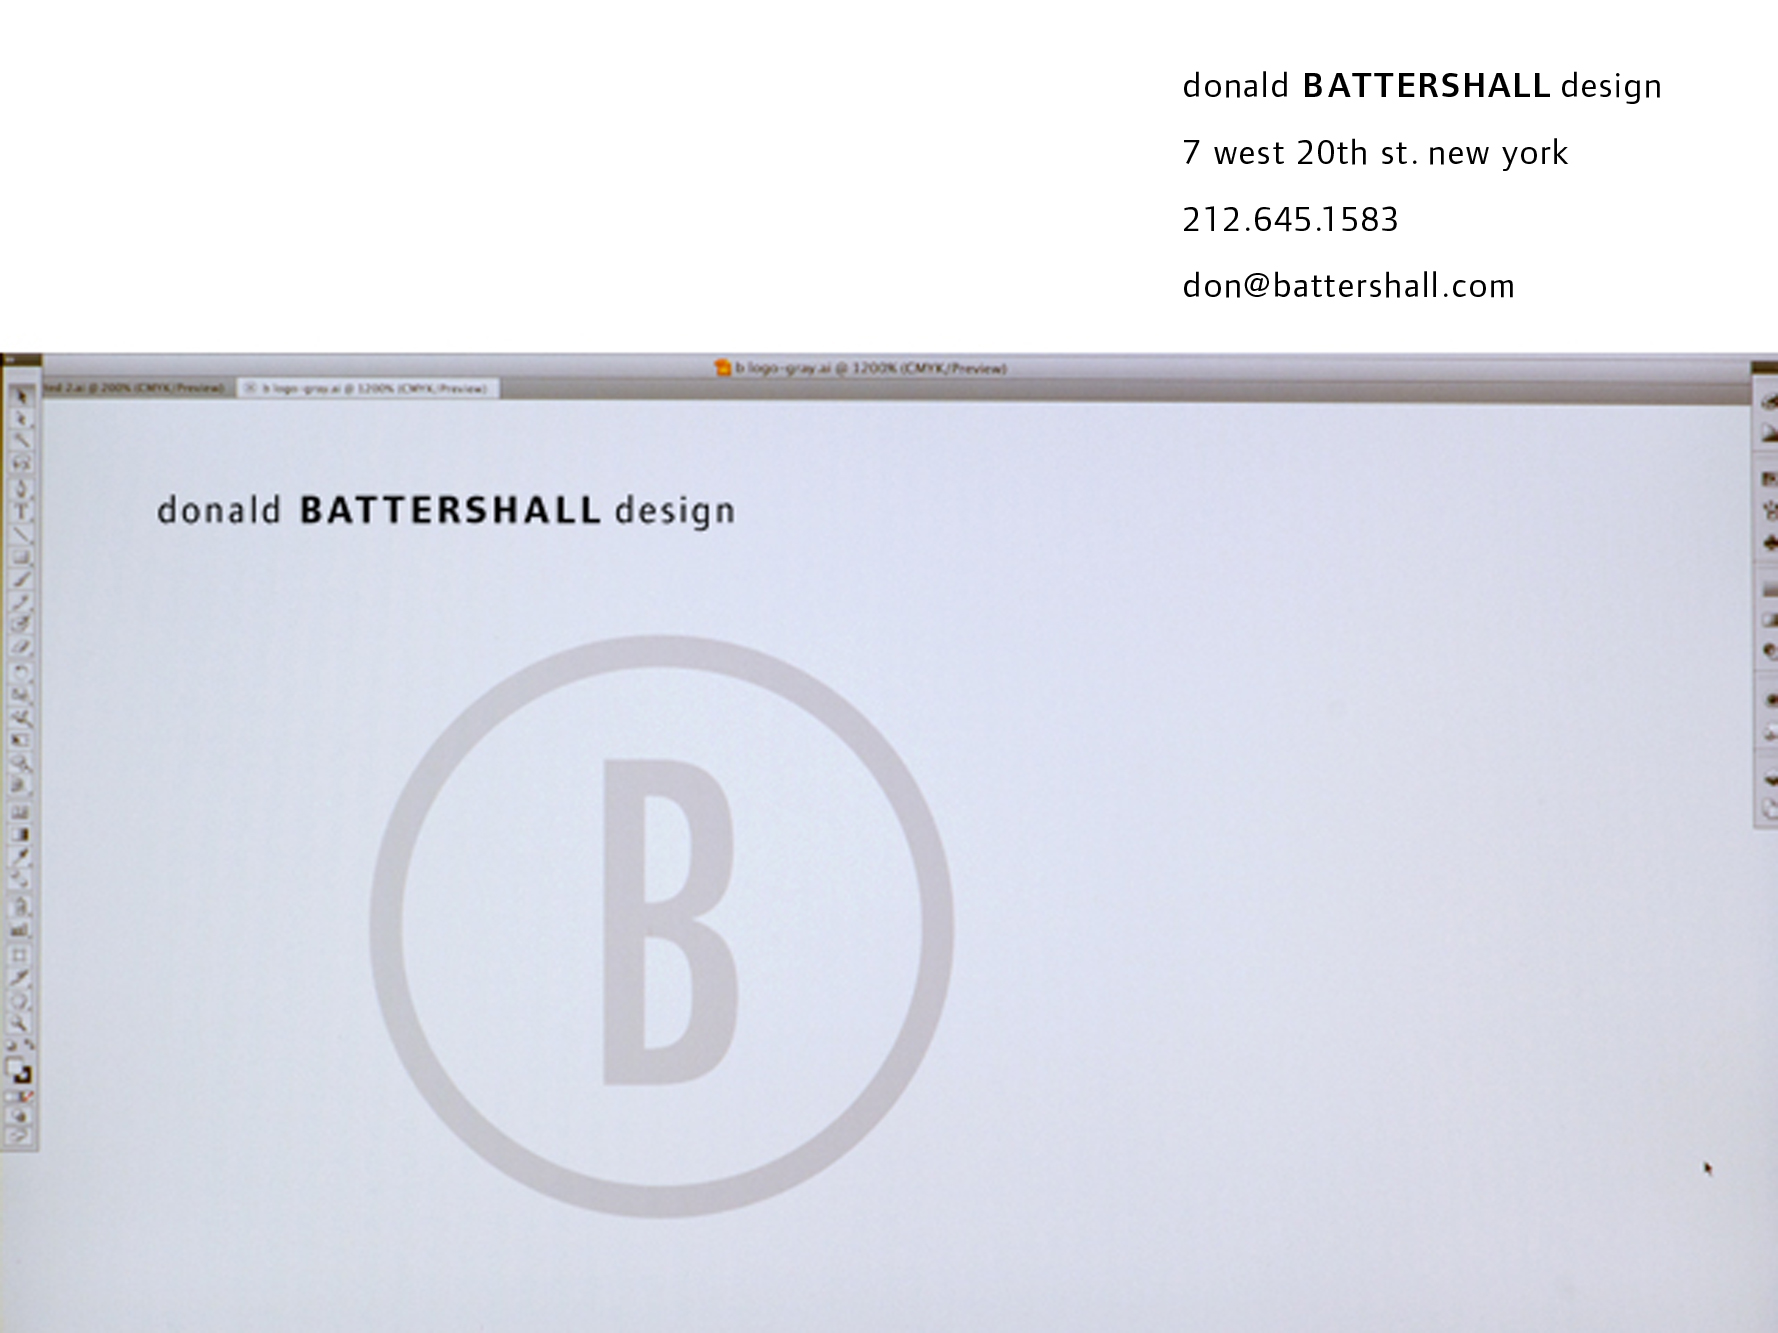 battershall design